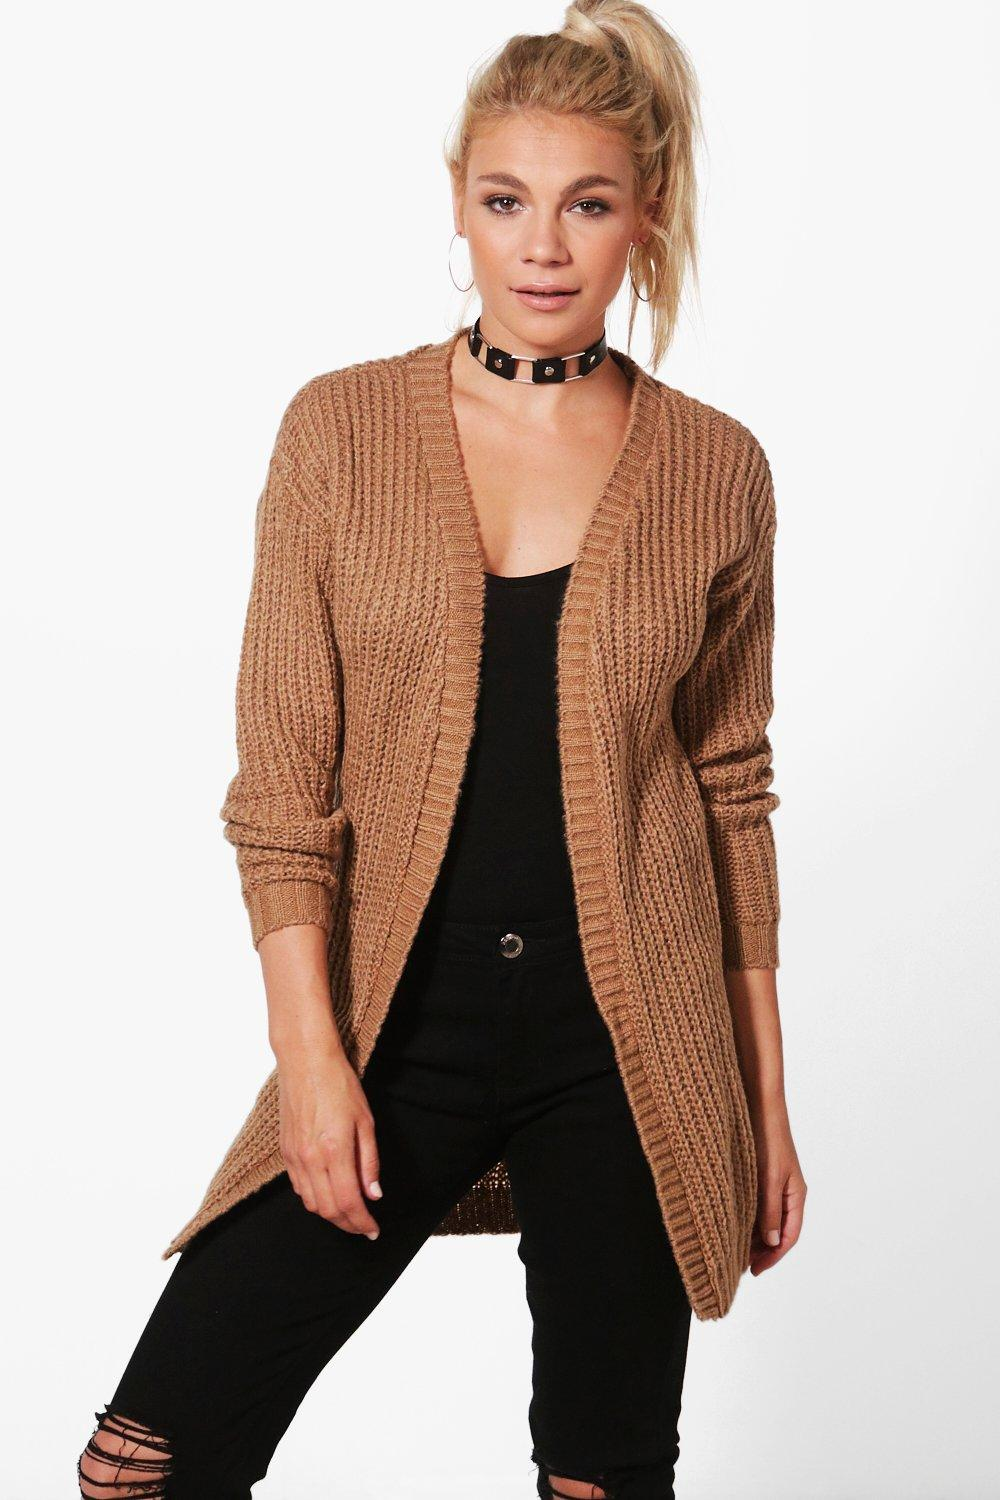 Martha Long Edge To Edge Grungy Cardigan